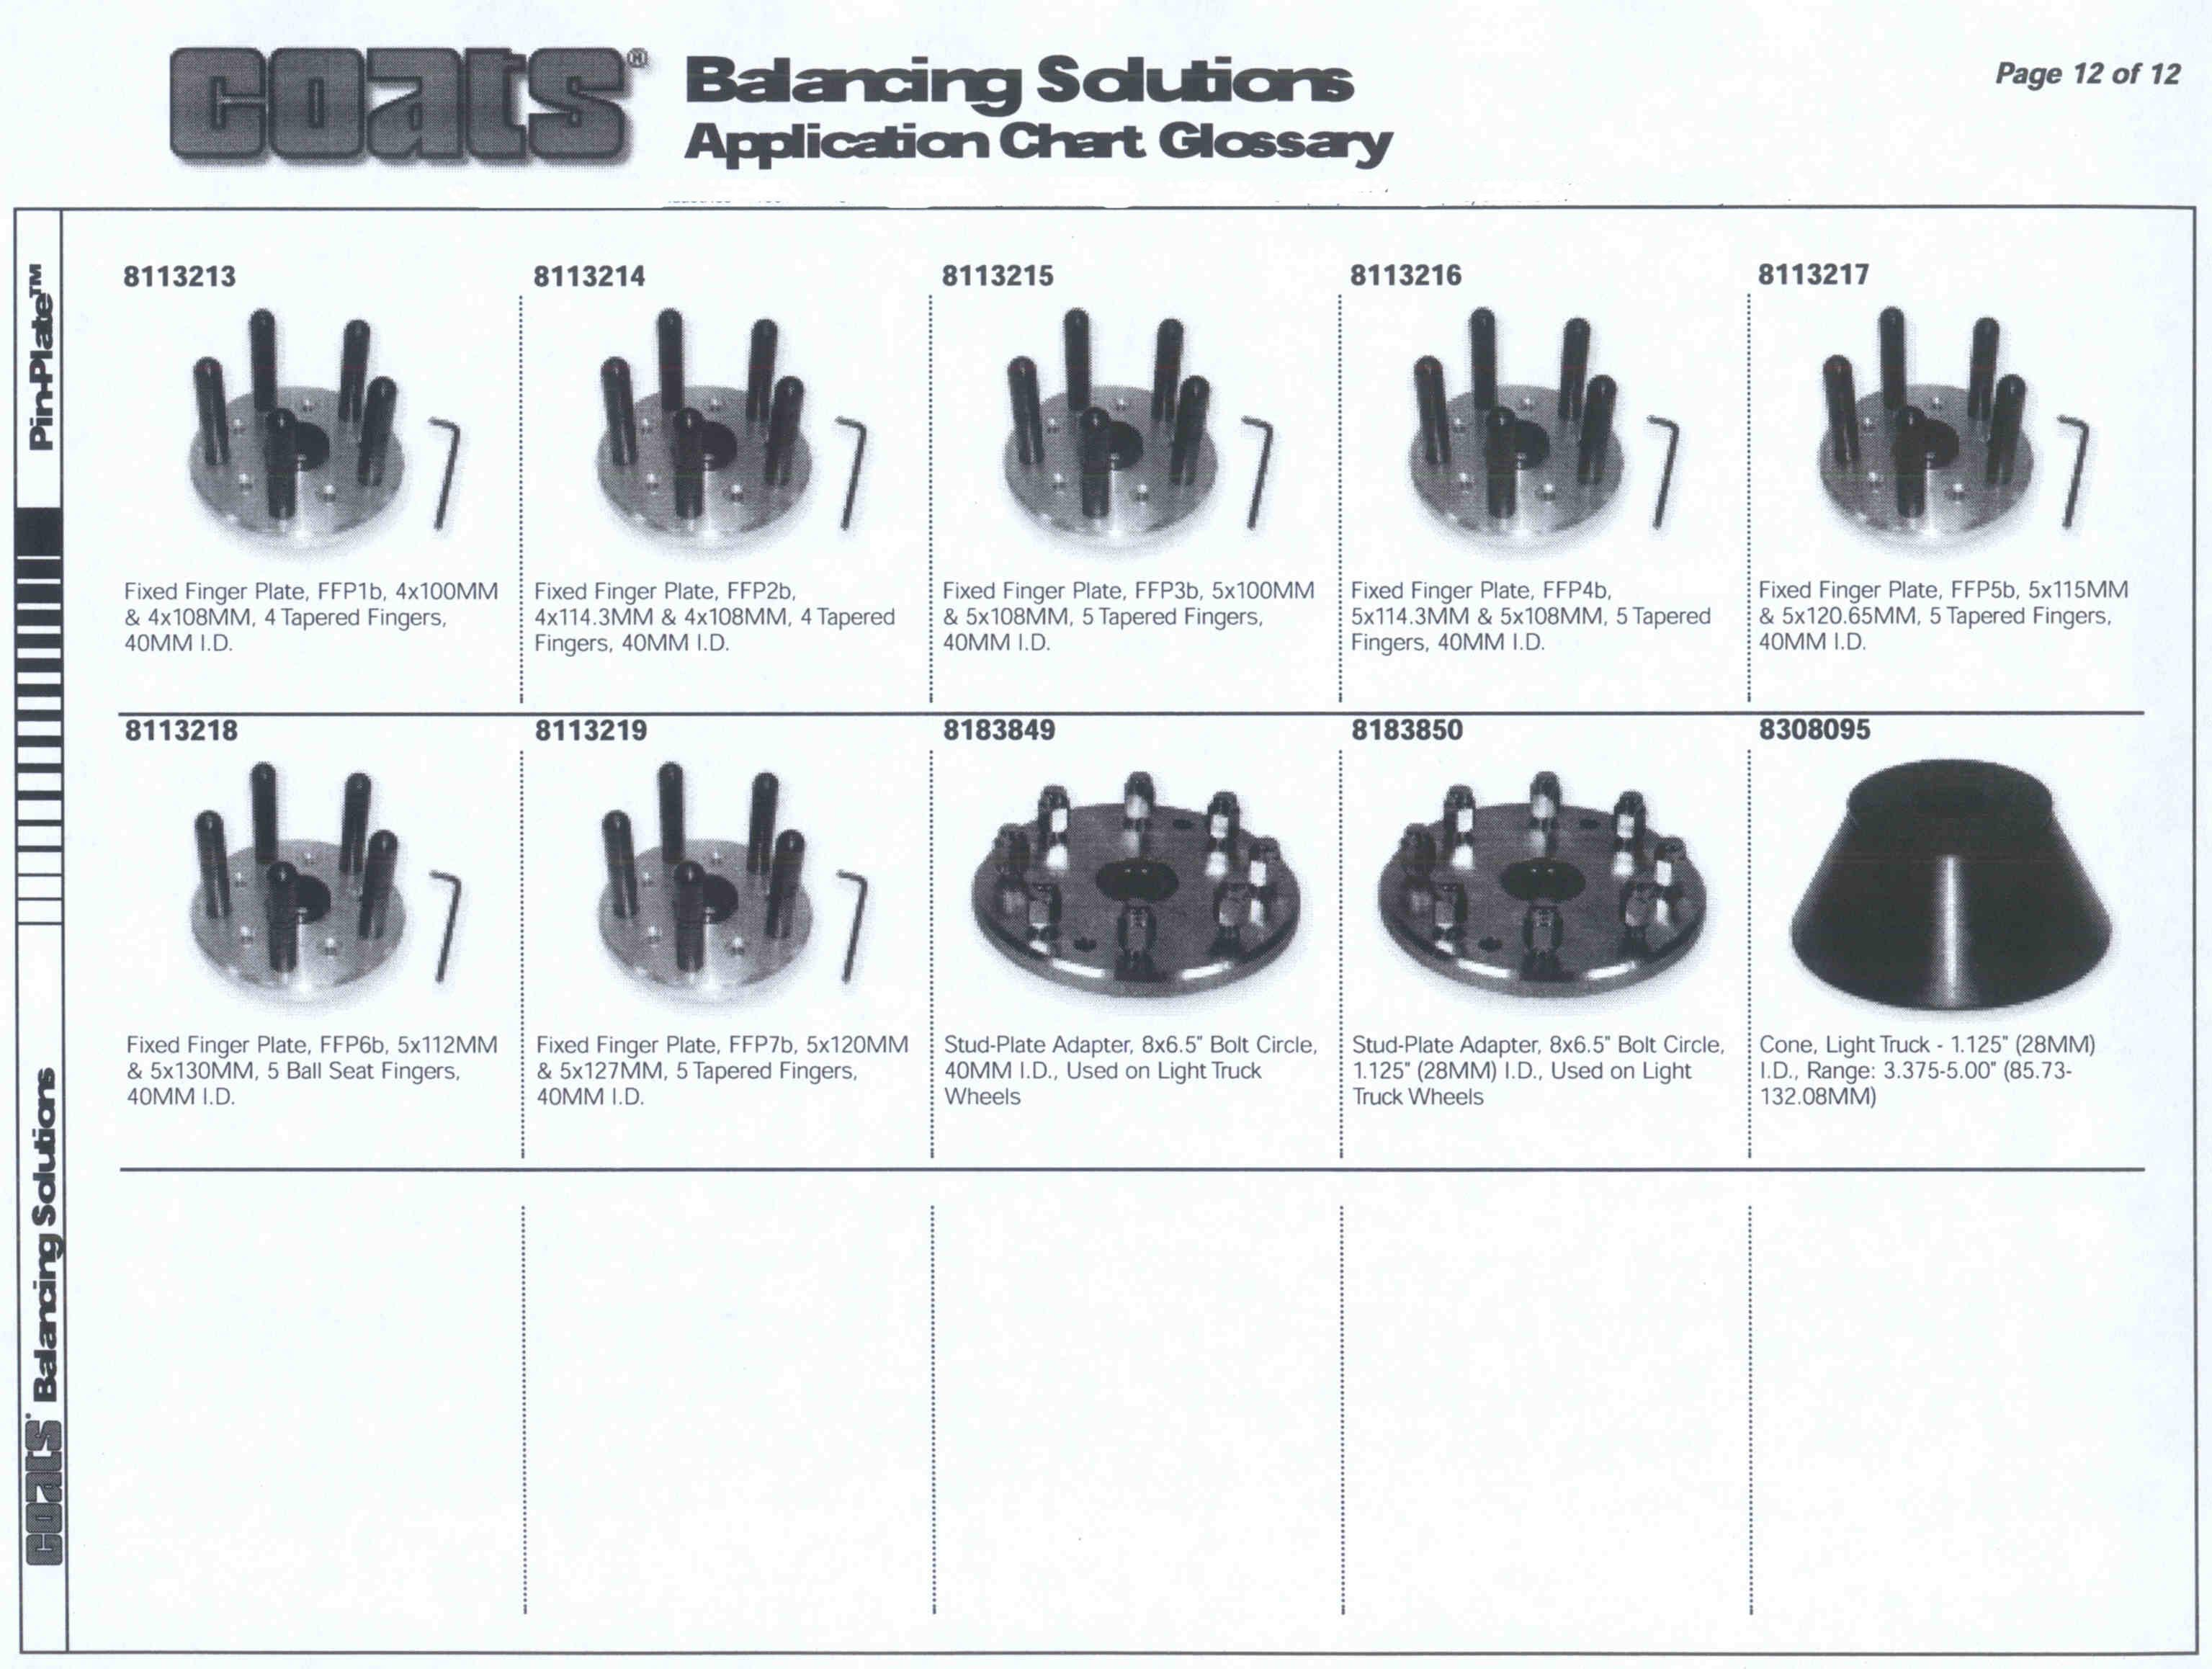 Illustrations Of Available Adapters